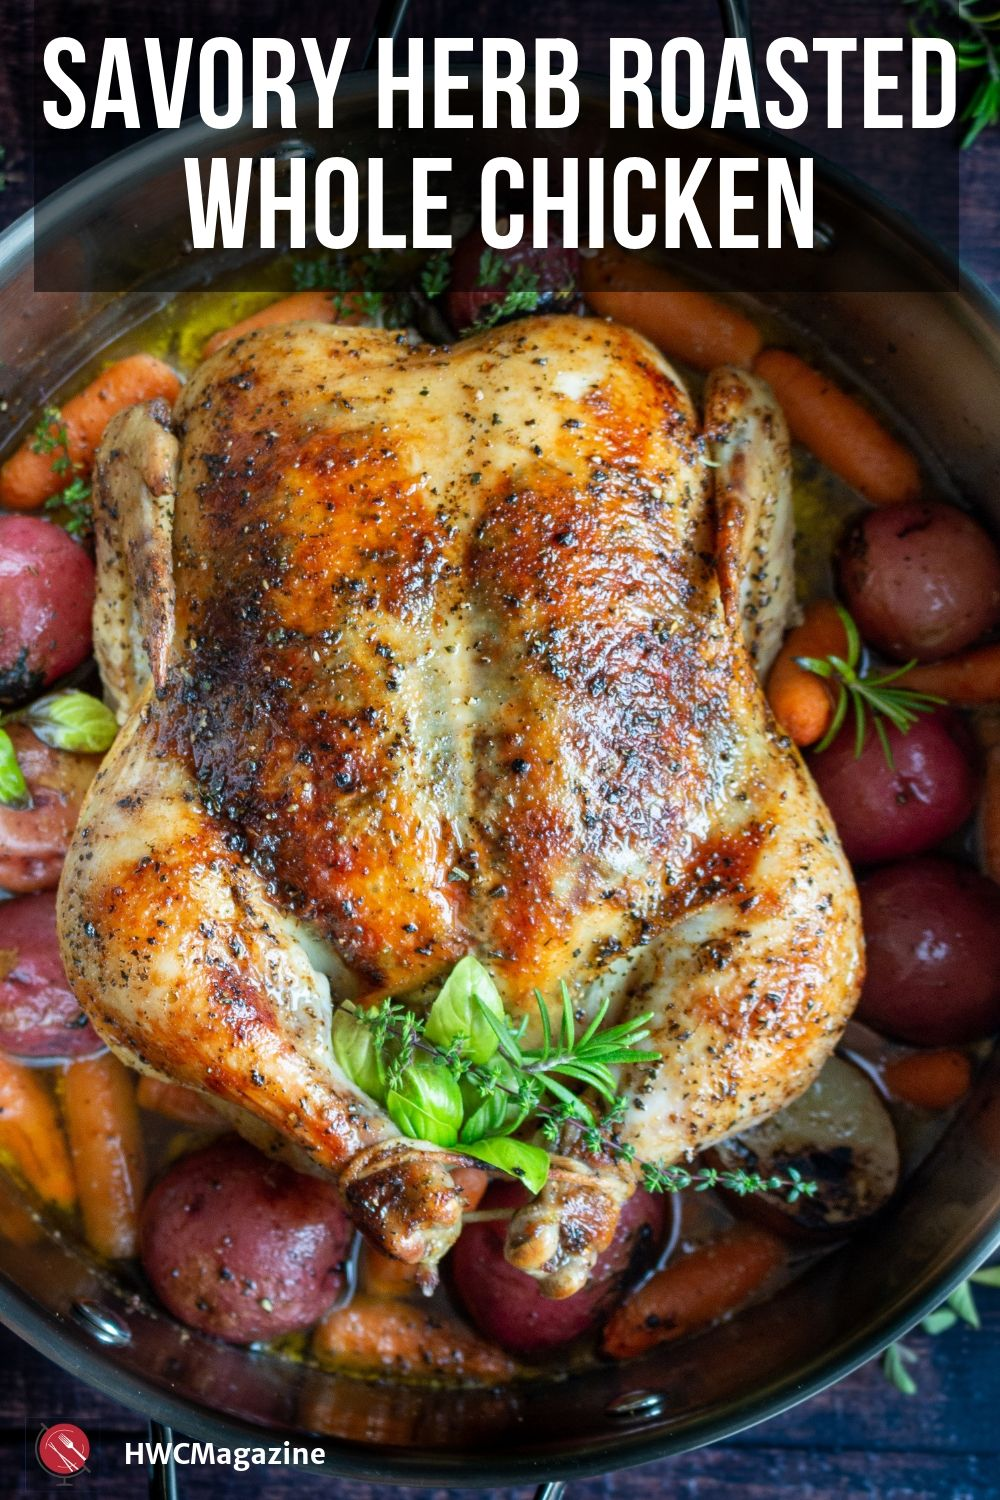 Savory Herb Roasted Whole Chicken / https://www.hwcmagazine.com